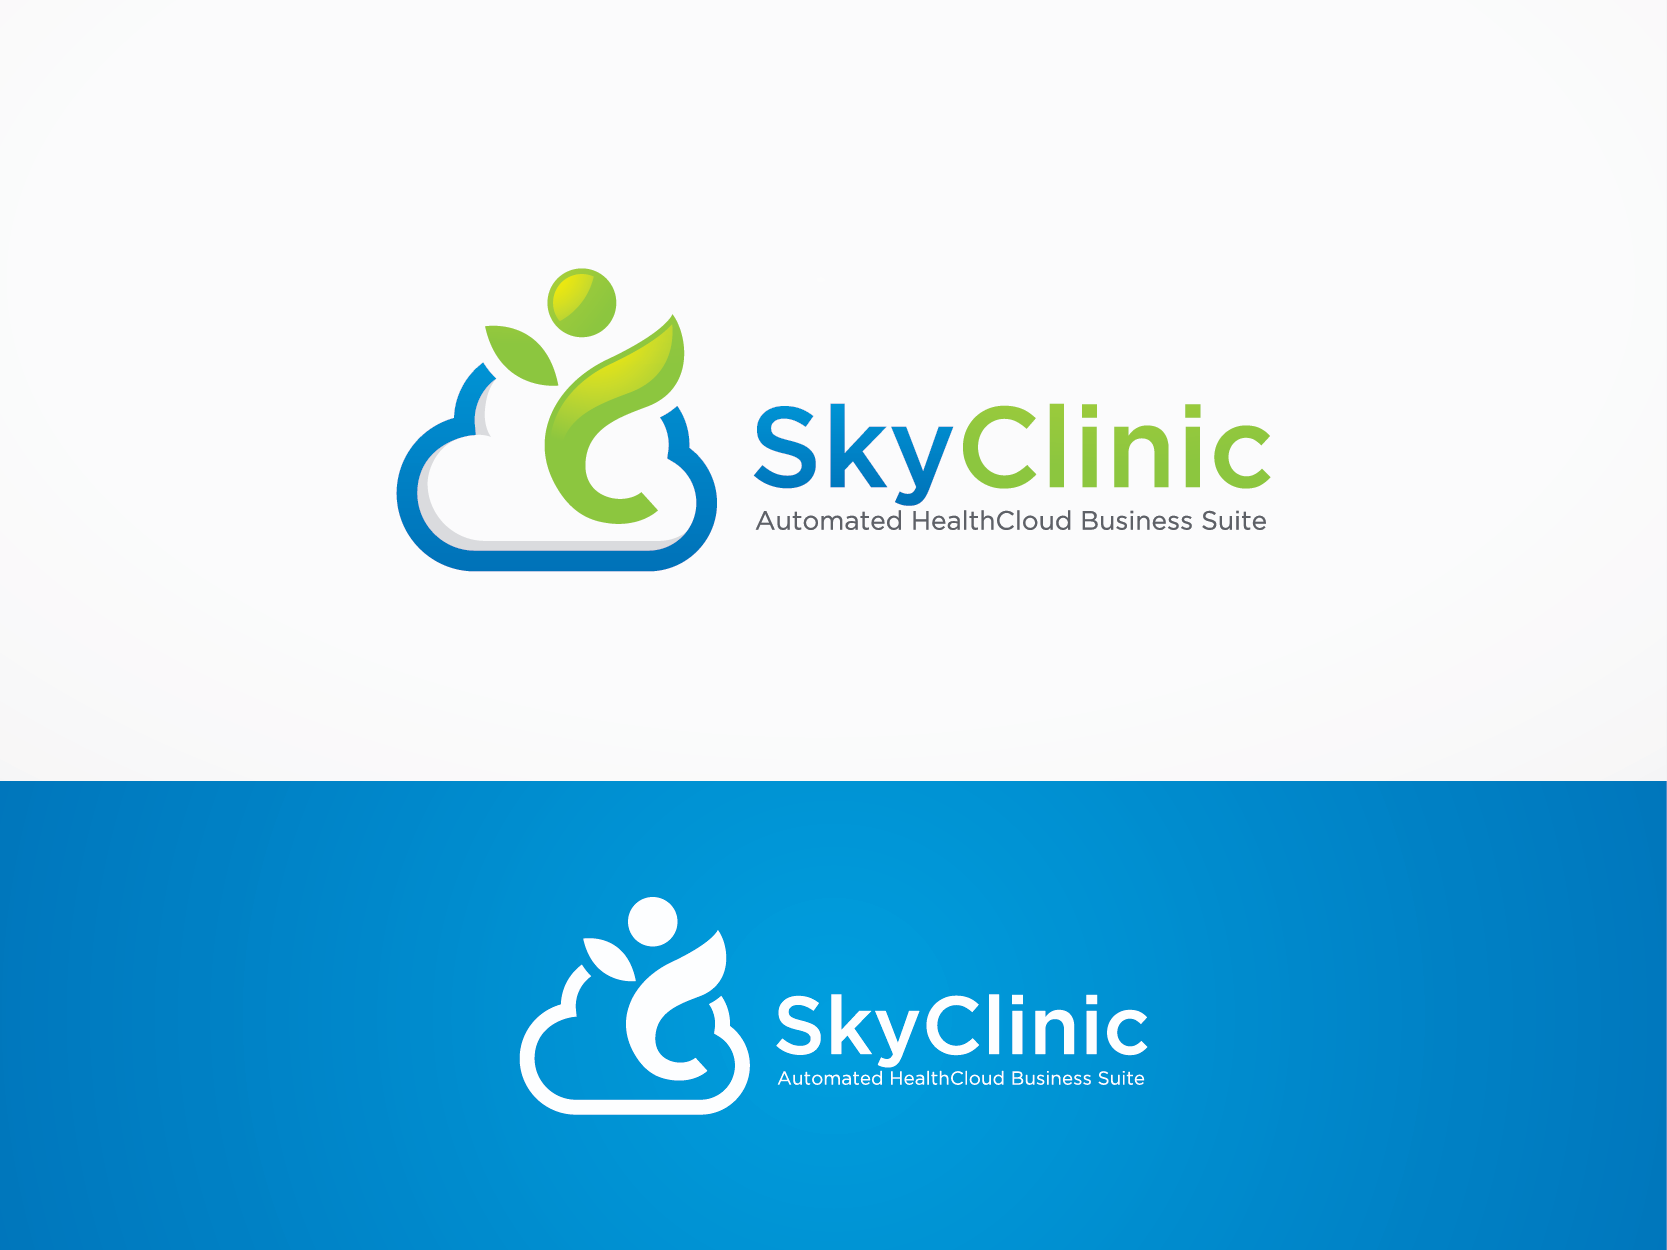 Create a Logo for an entry point into our cloud app: SkyClinic -Automated HealthCloud Business Suite